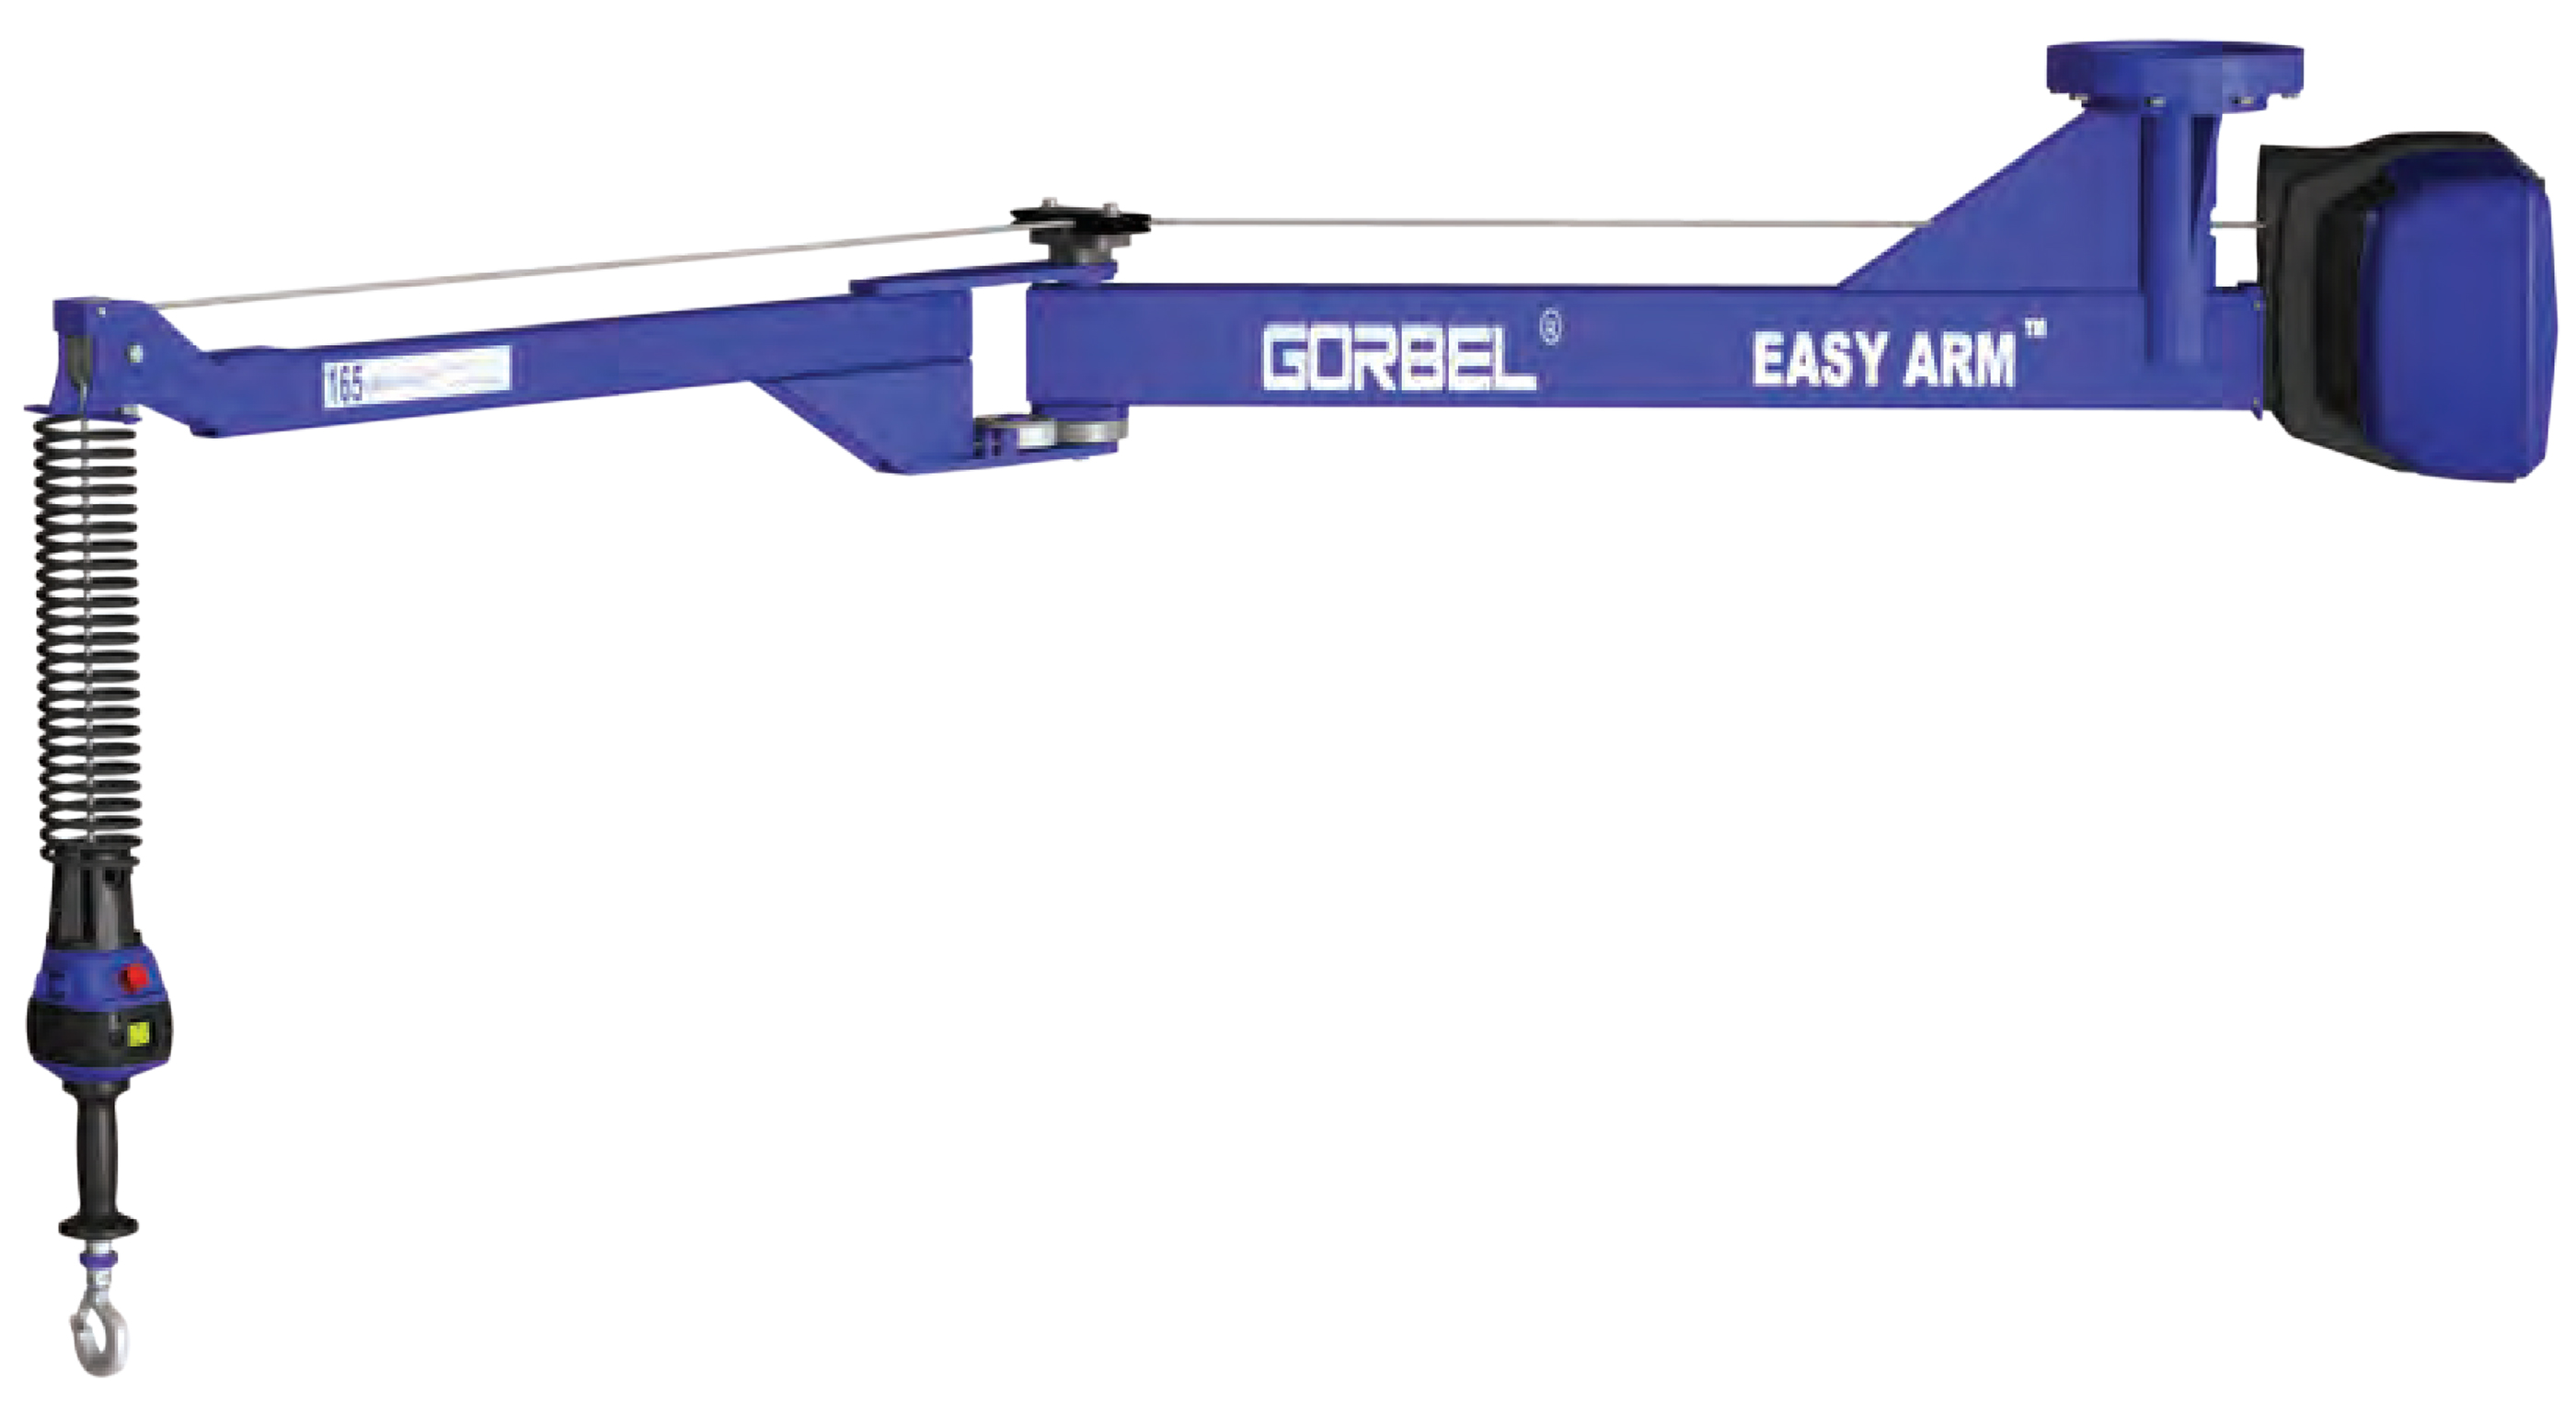 G-Force Lifting Equipment